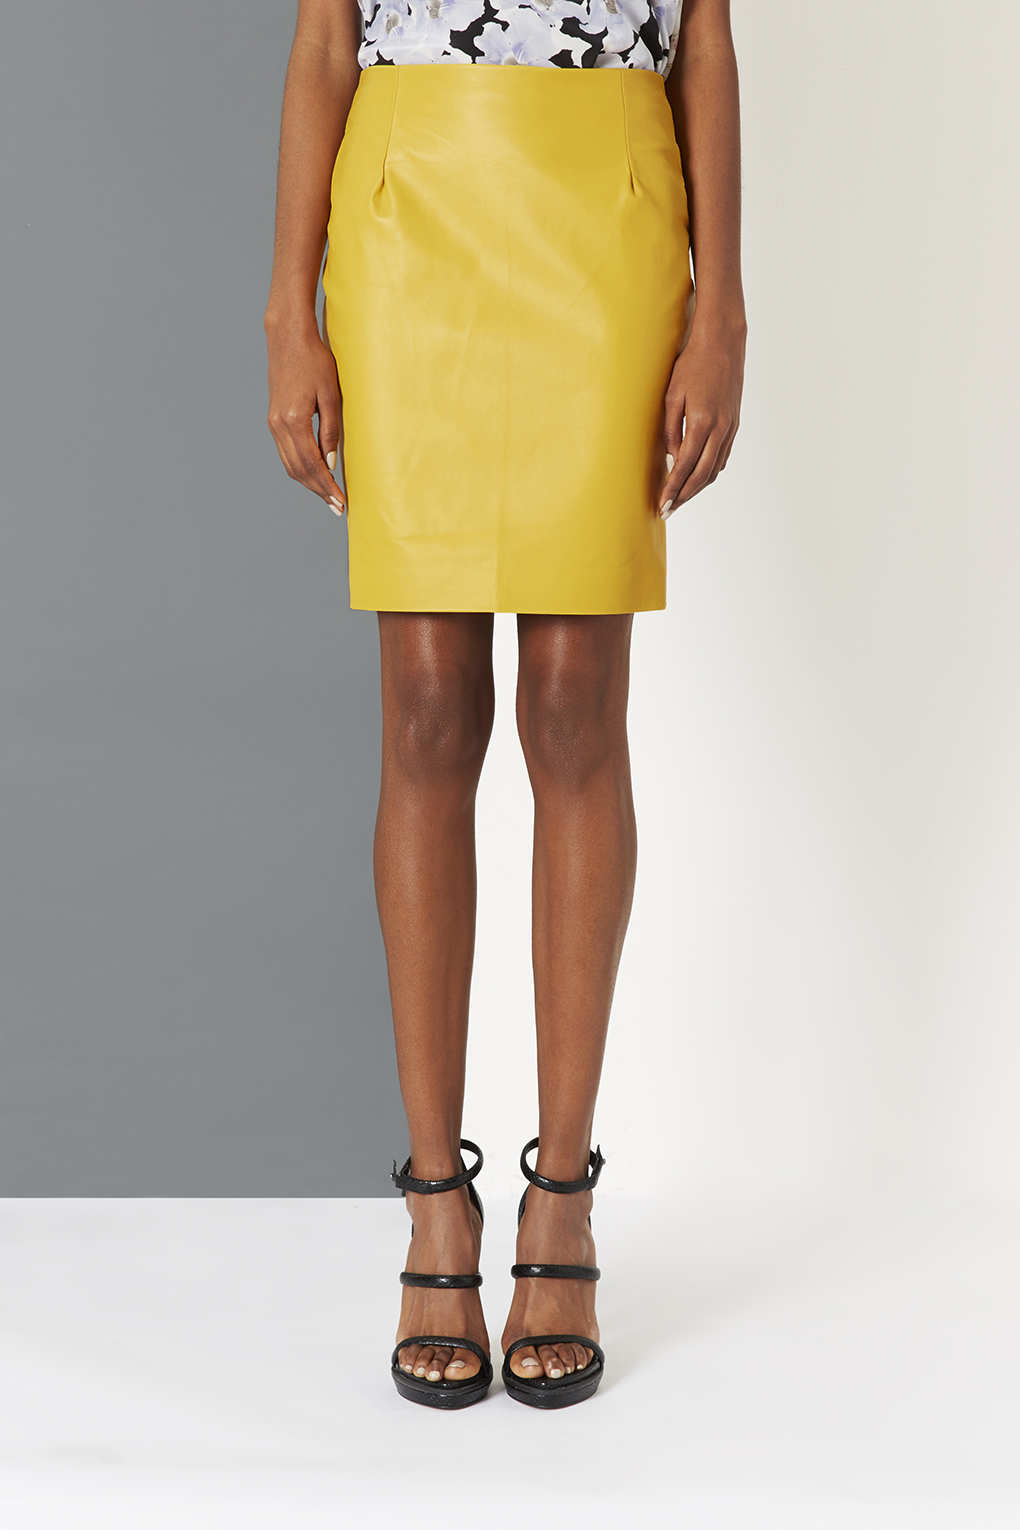 Topshop Yellow Leather Pencil Skirt By Boutique in Yellow | Lyst